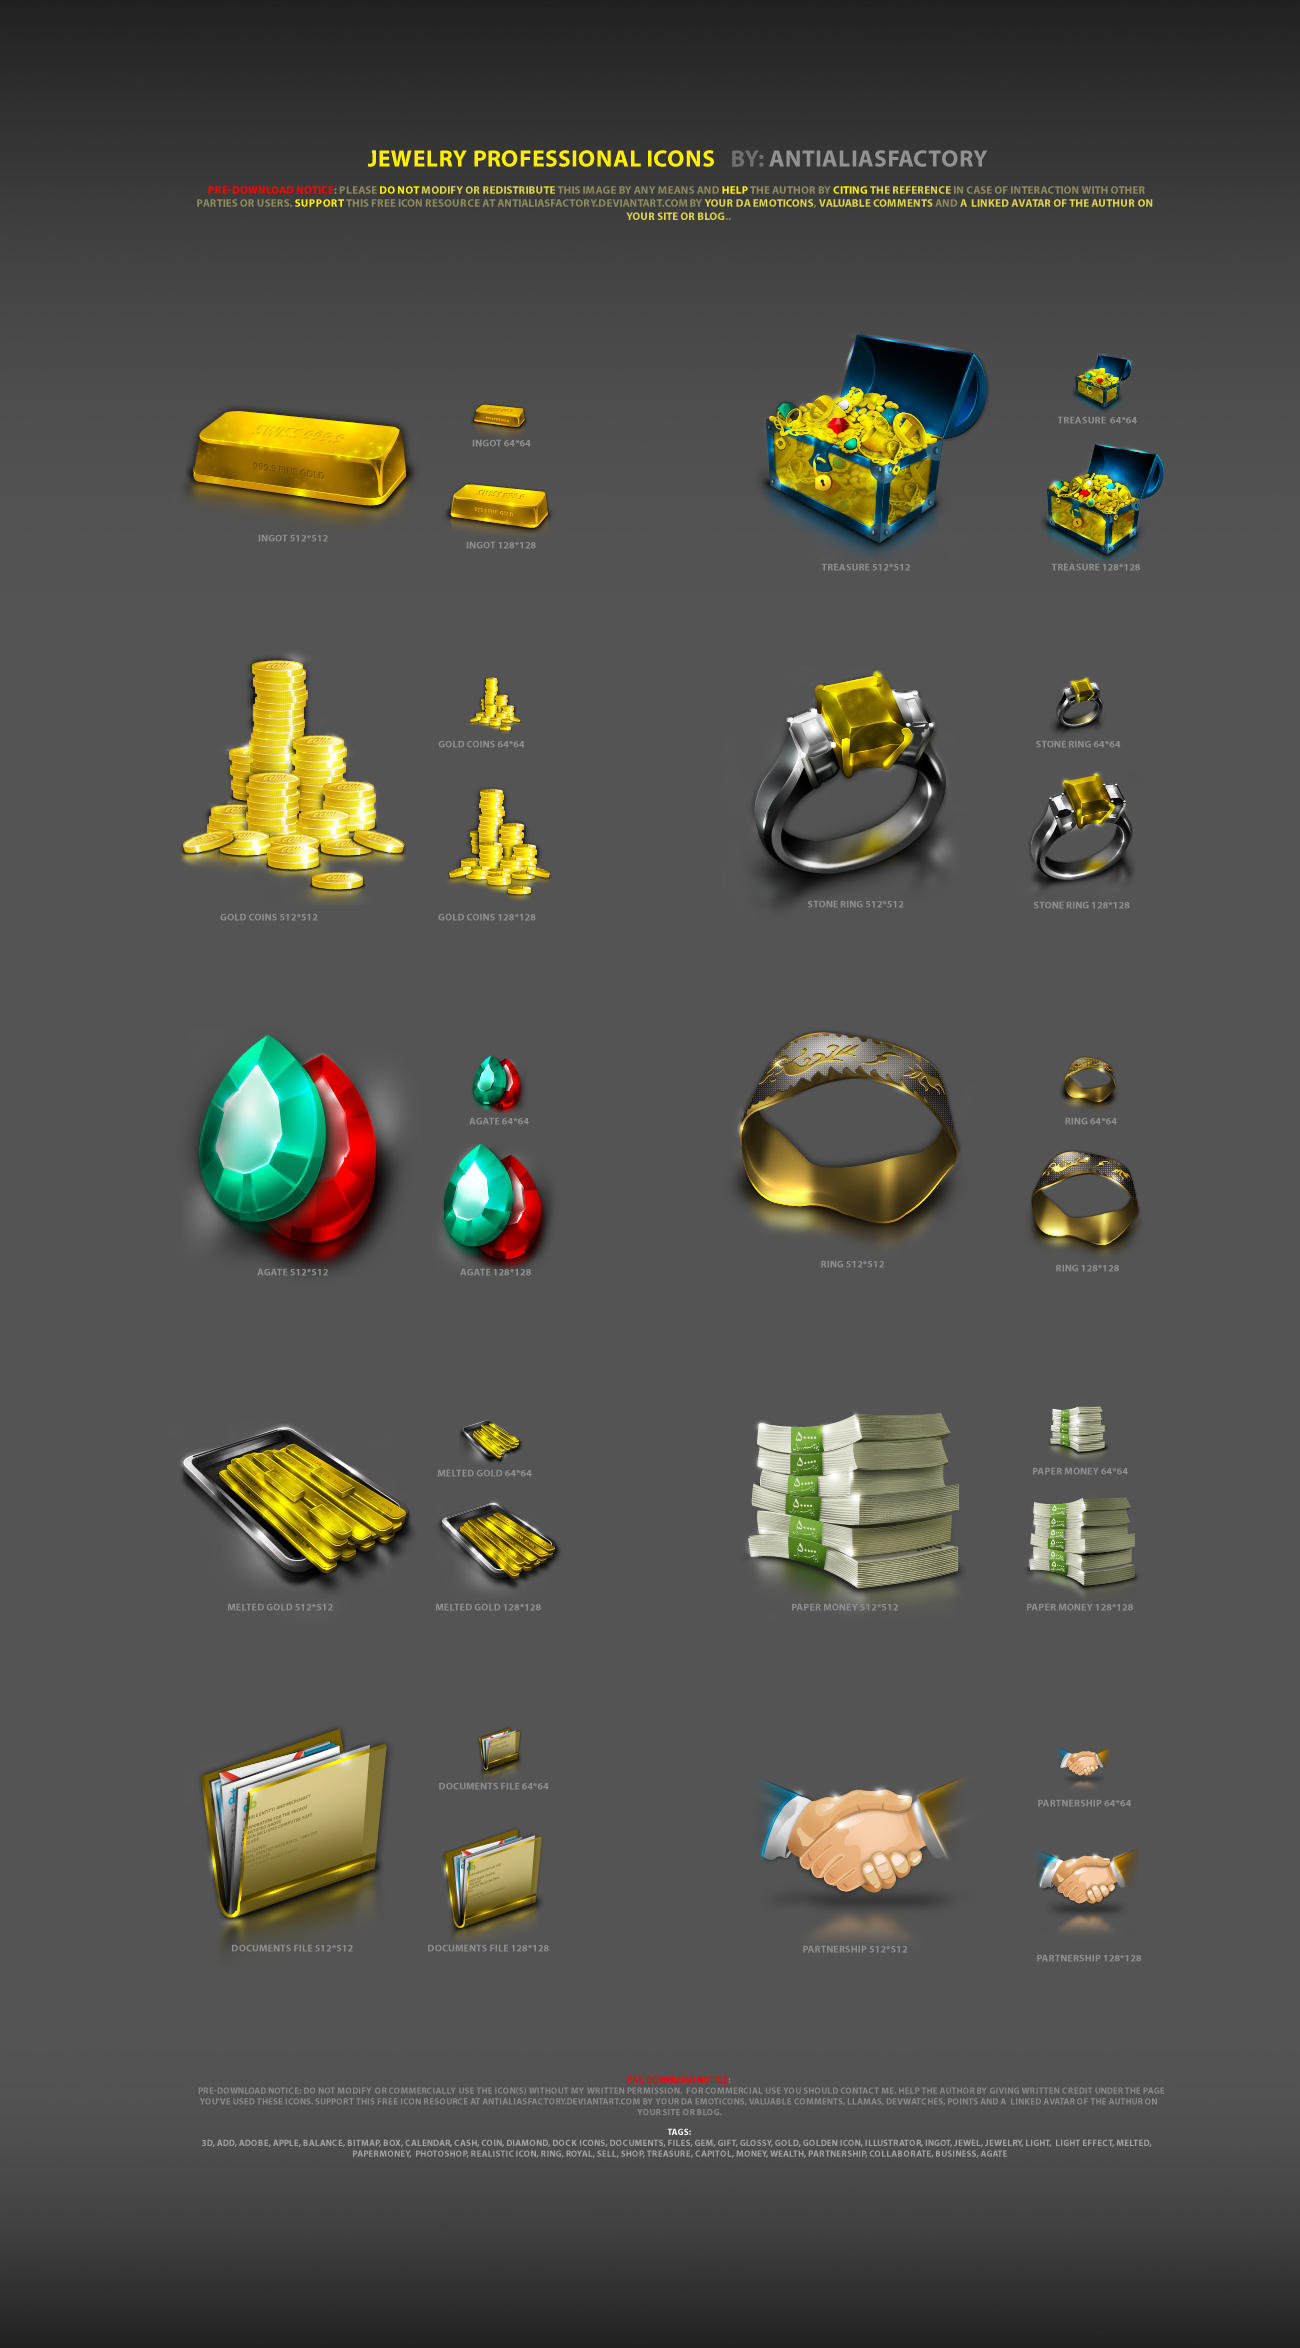 Jewelry Professional Icons by antialiasfactory